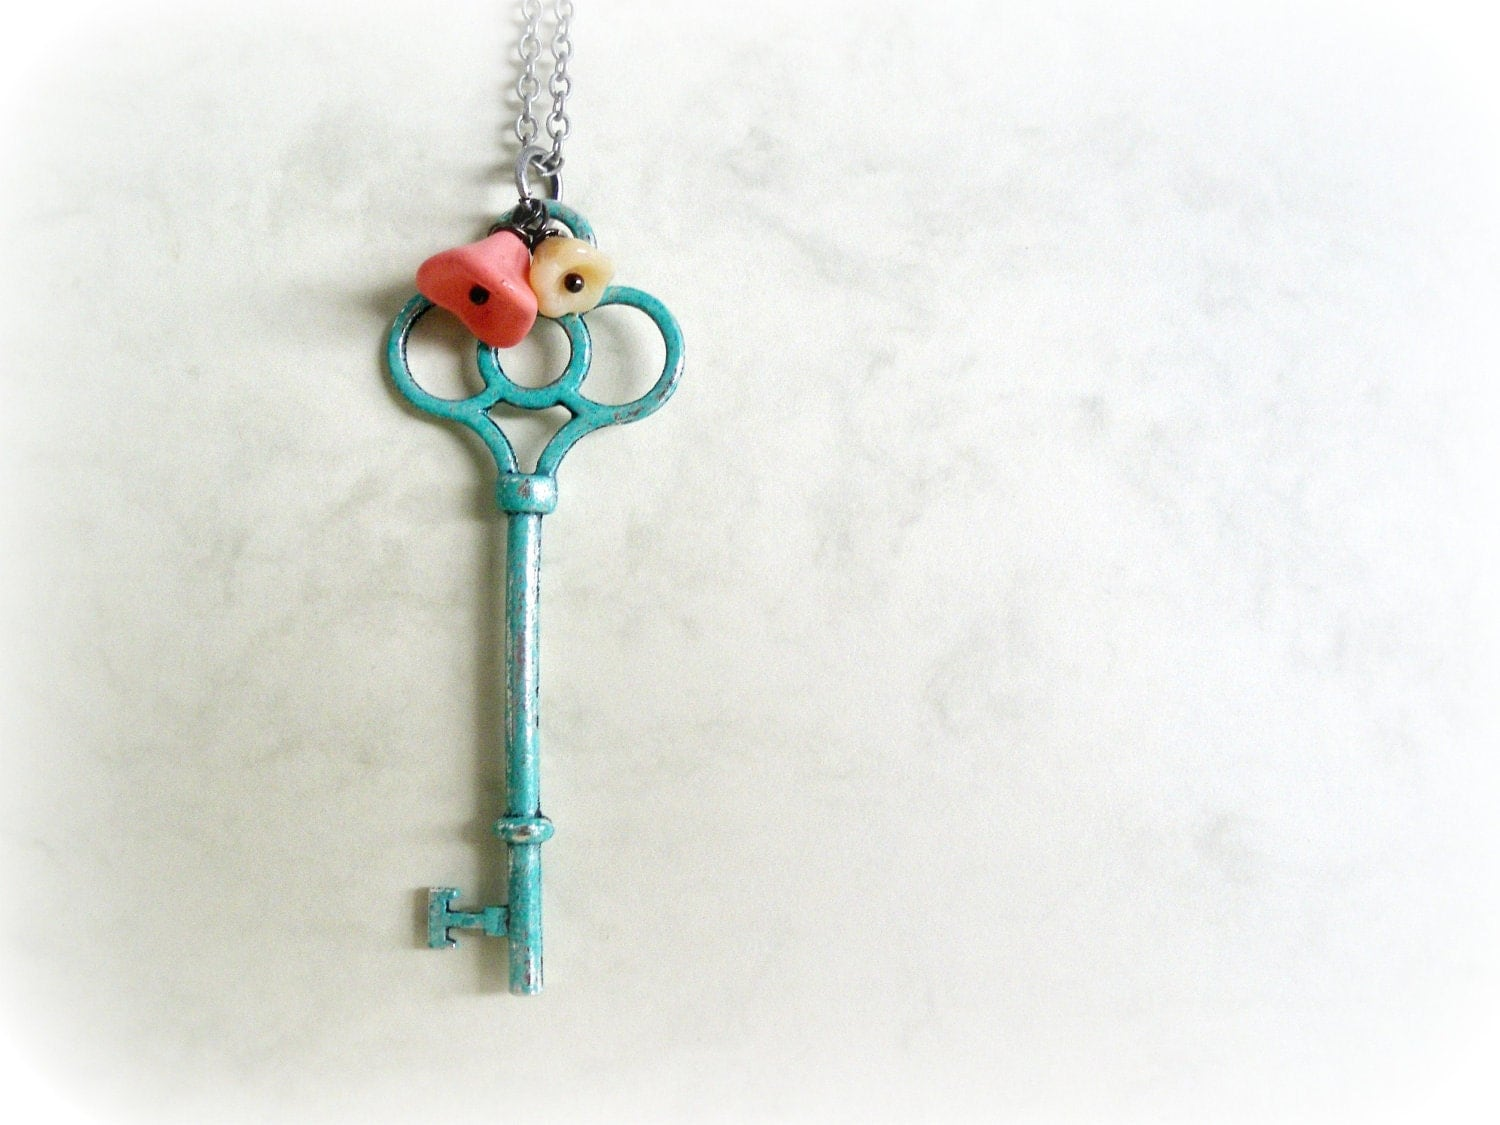 Garden Key-Romantic necklace-Teal blue verdigris patina.Peach pink,white Czech flowers.Antiqued silver chain.Gift for her.Valentines - GBILOBA